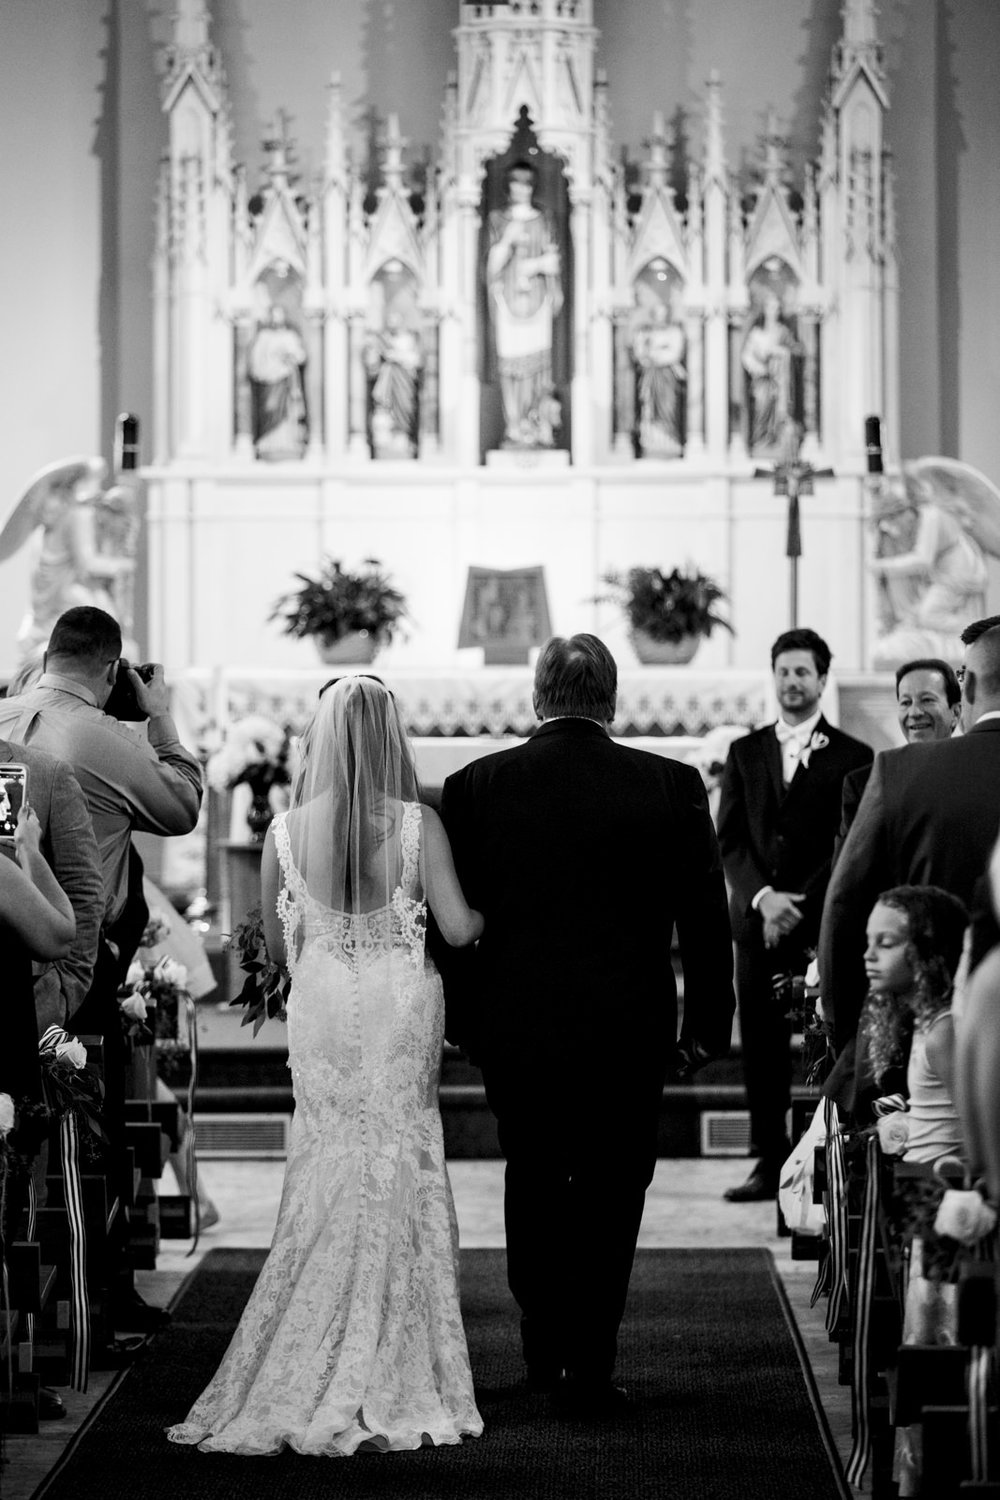 The father of the bride walks his daughter down the aisle on her wedding day in Michigan.